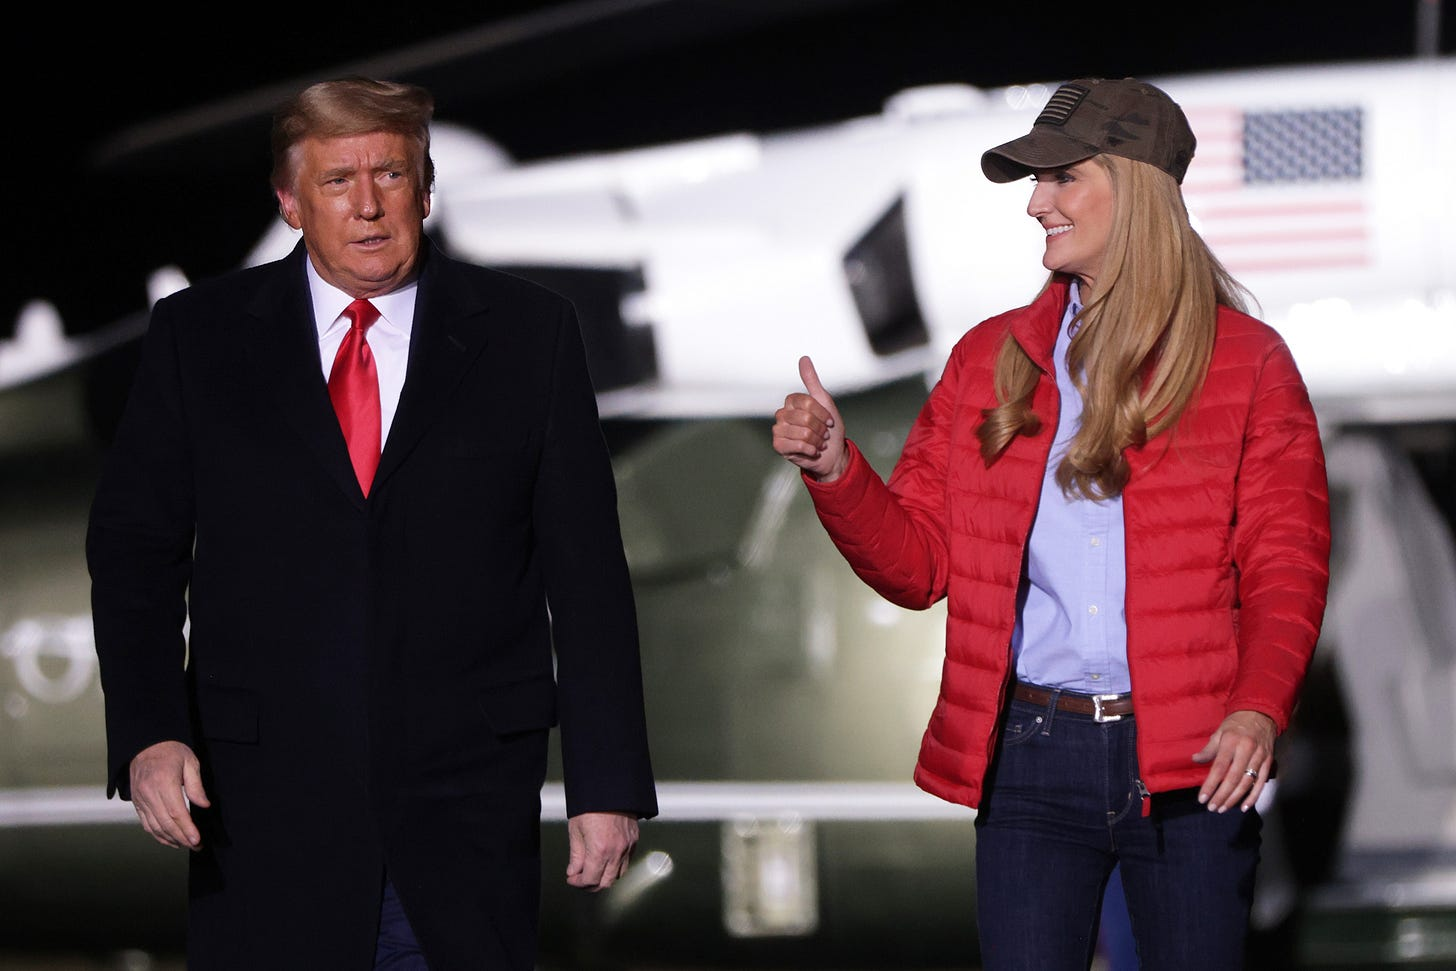 U.S. President Donald Trump arrives with Sen. Kelly Loeffler (R-GA) at a campaign rally at Dalton Regional Airport January 4, 2021 in Dalton, Georgia. Trump campaigned for Loeffler and Sen. David Perdue (R-GA) ahead of tomorrow's run-off elections in Georgia. (Photo by Alex Wong/Getty Images)